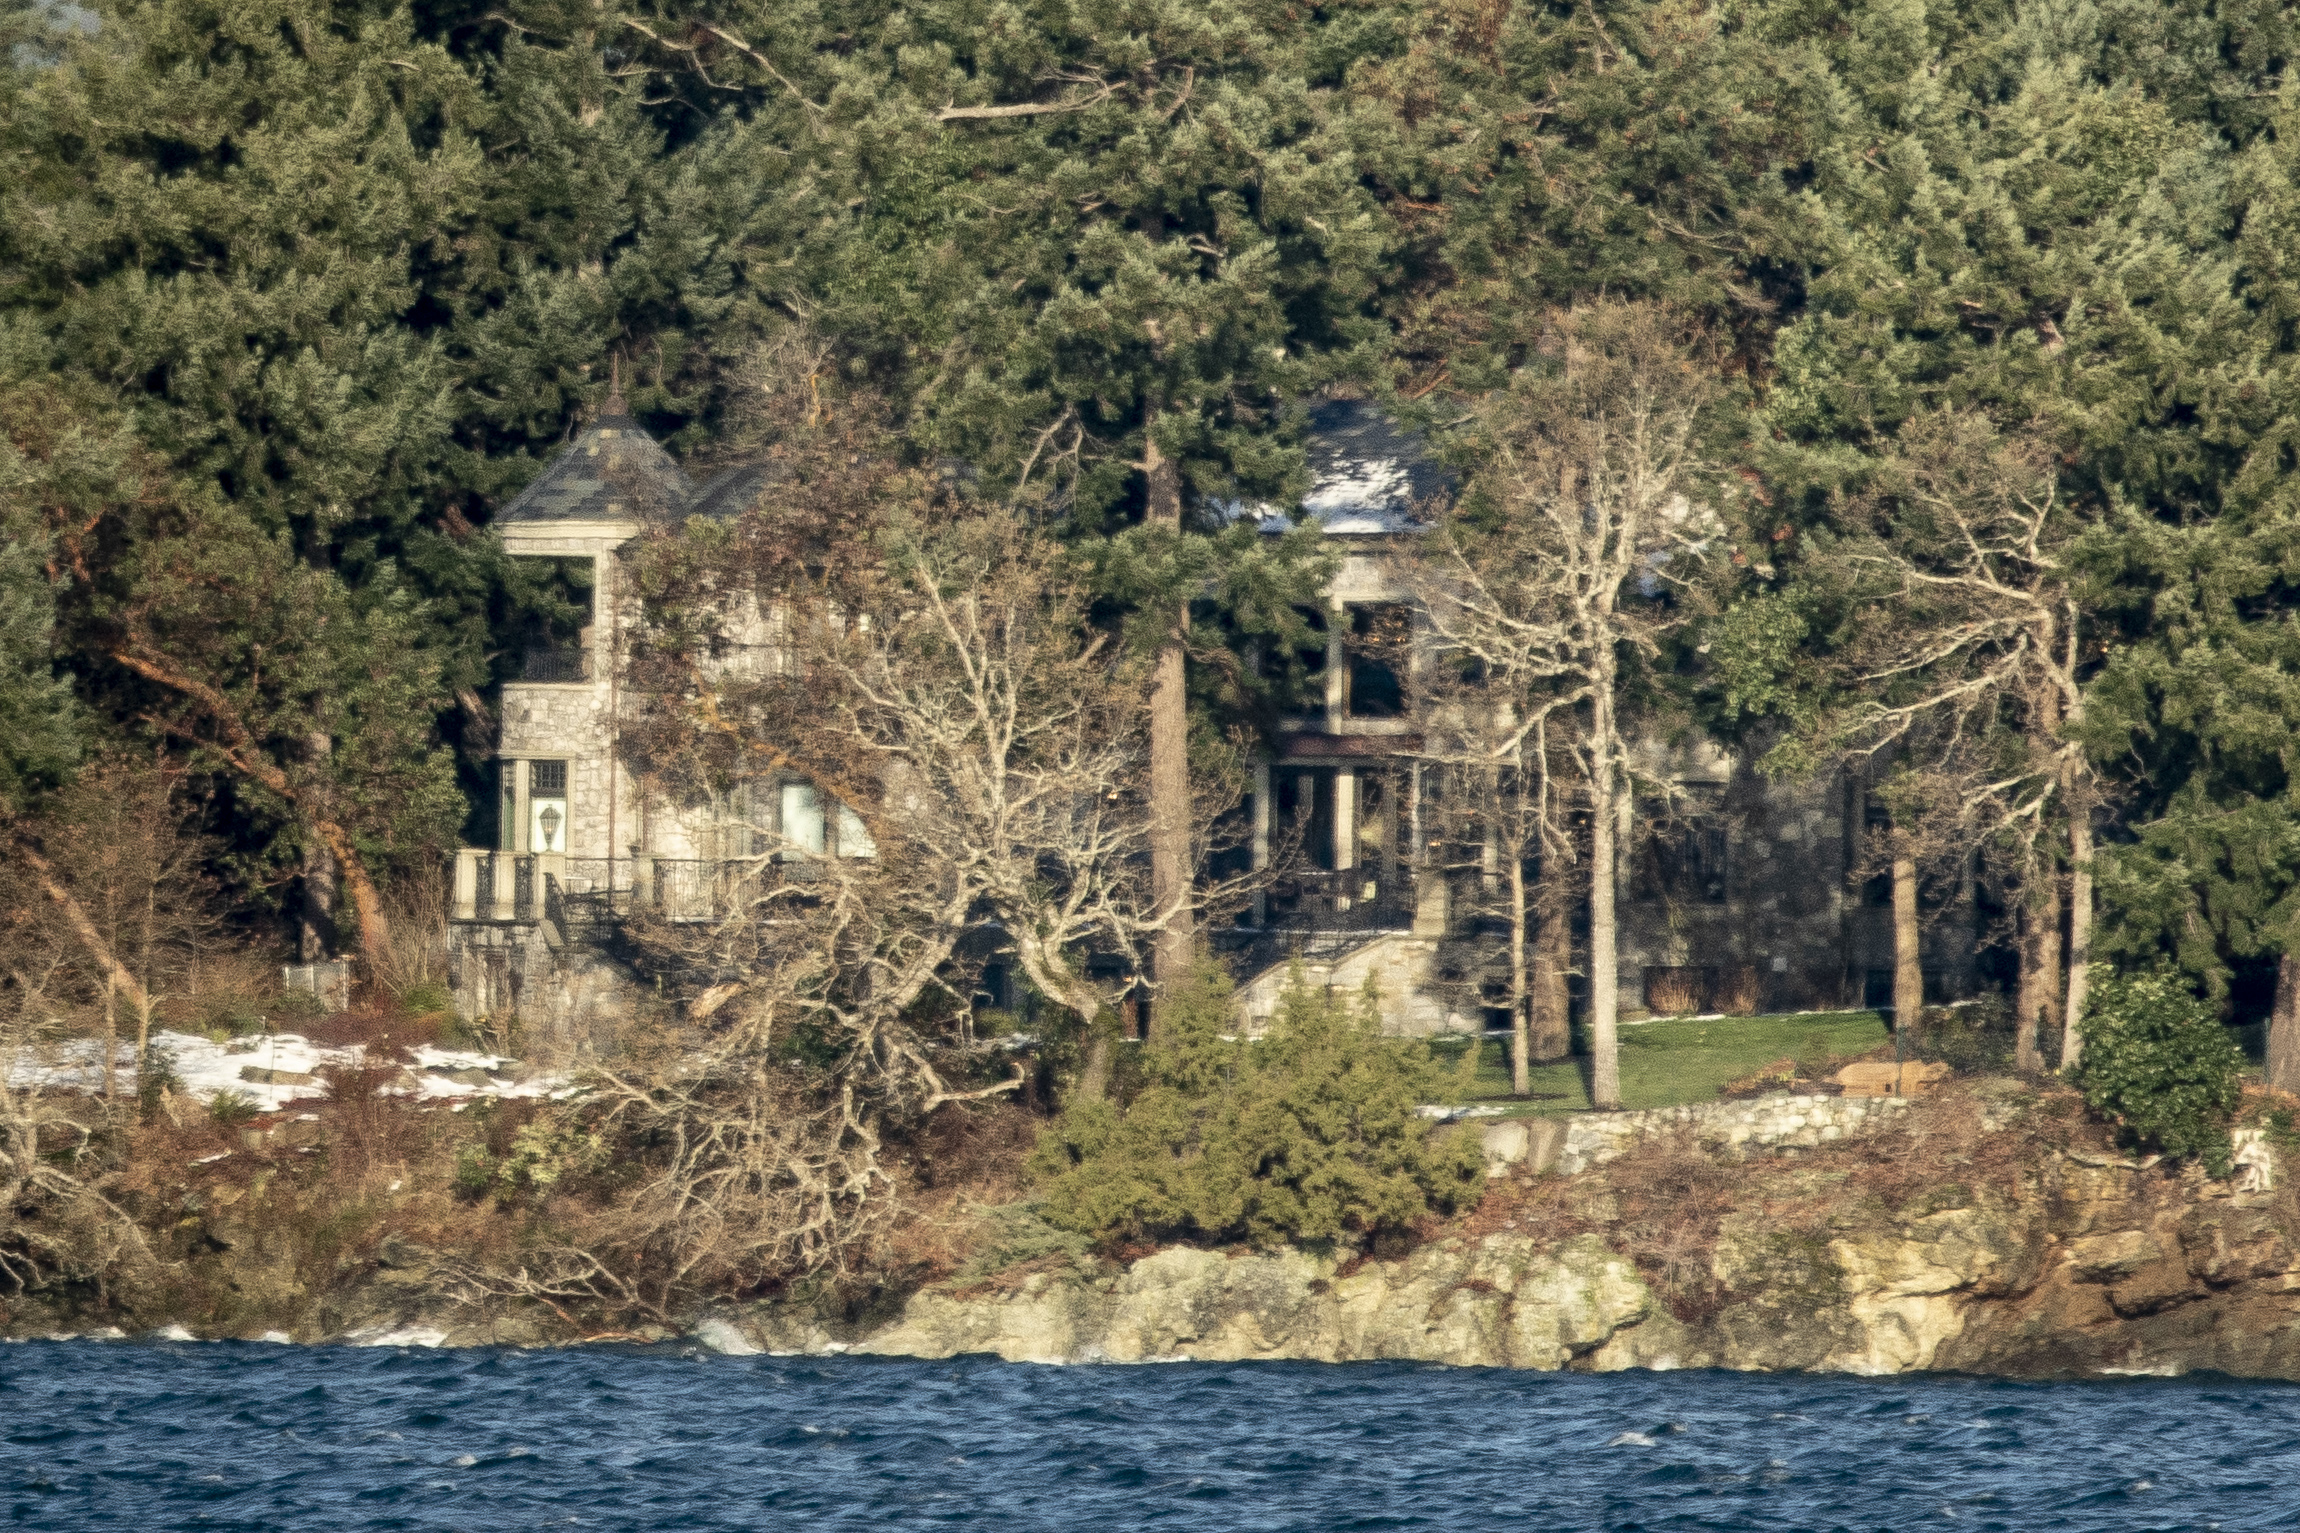 Prince Harry and Meghan Markle's house on Vancouver Island, Canada